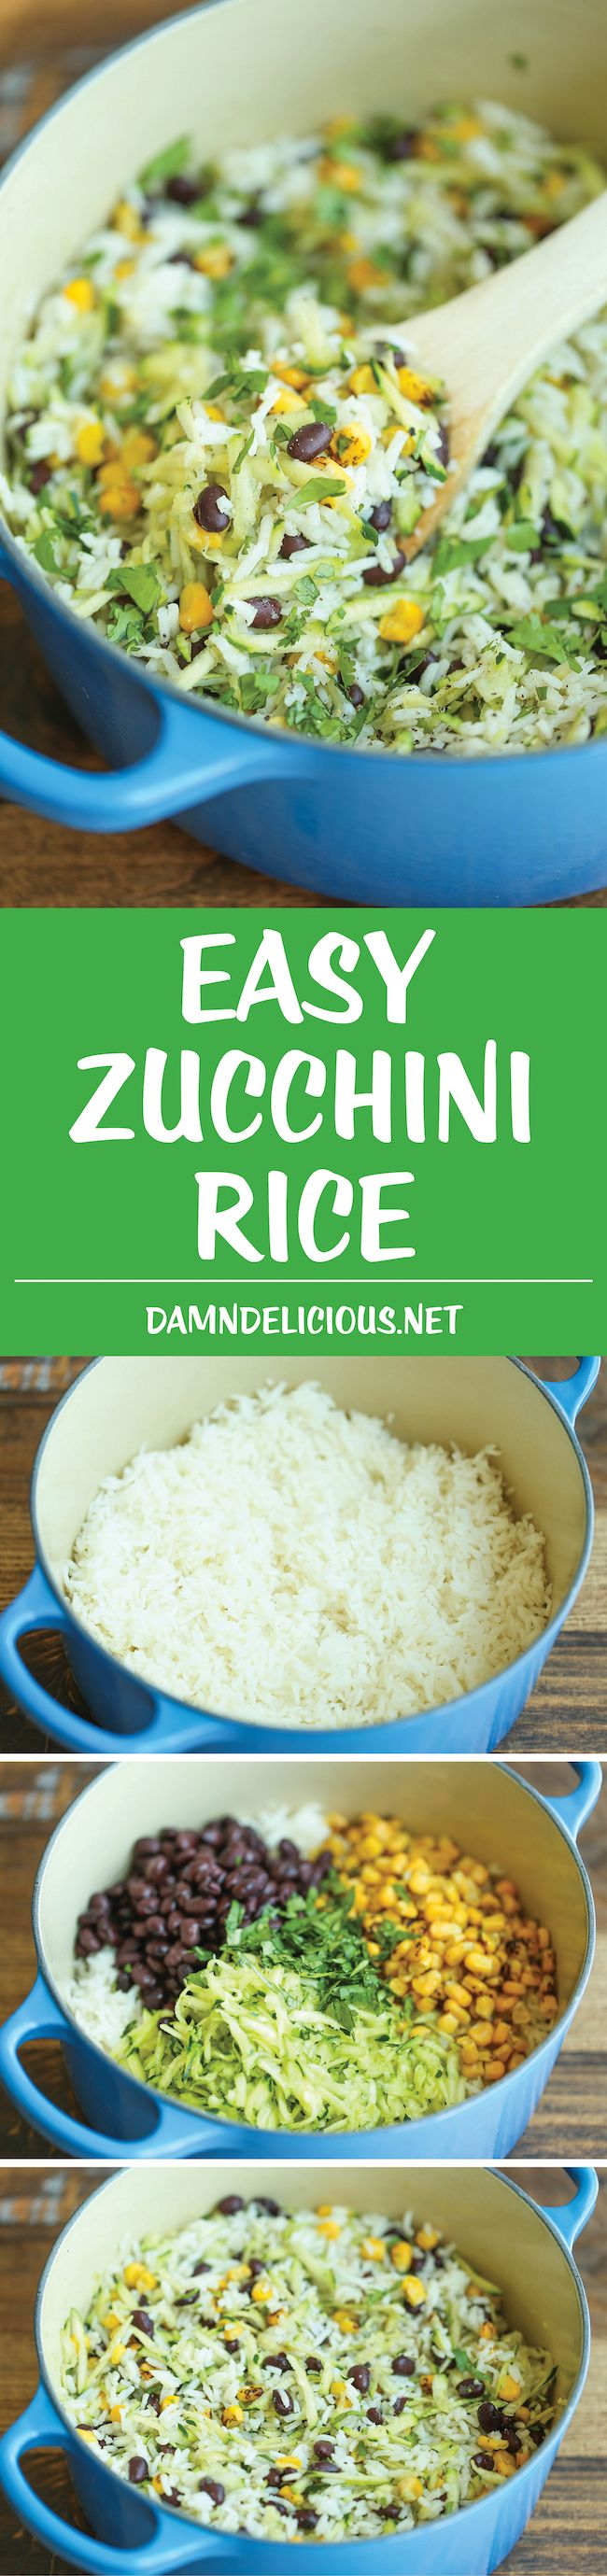 Zucchini Rice - A quick and easy side dish that's fresh, healthy, hearty and goes with everything!